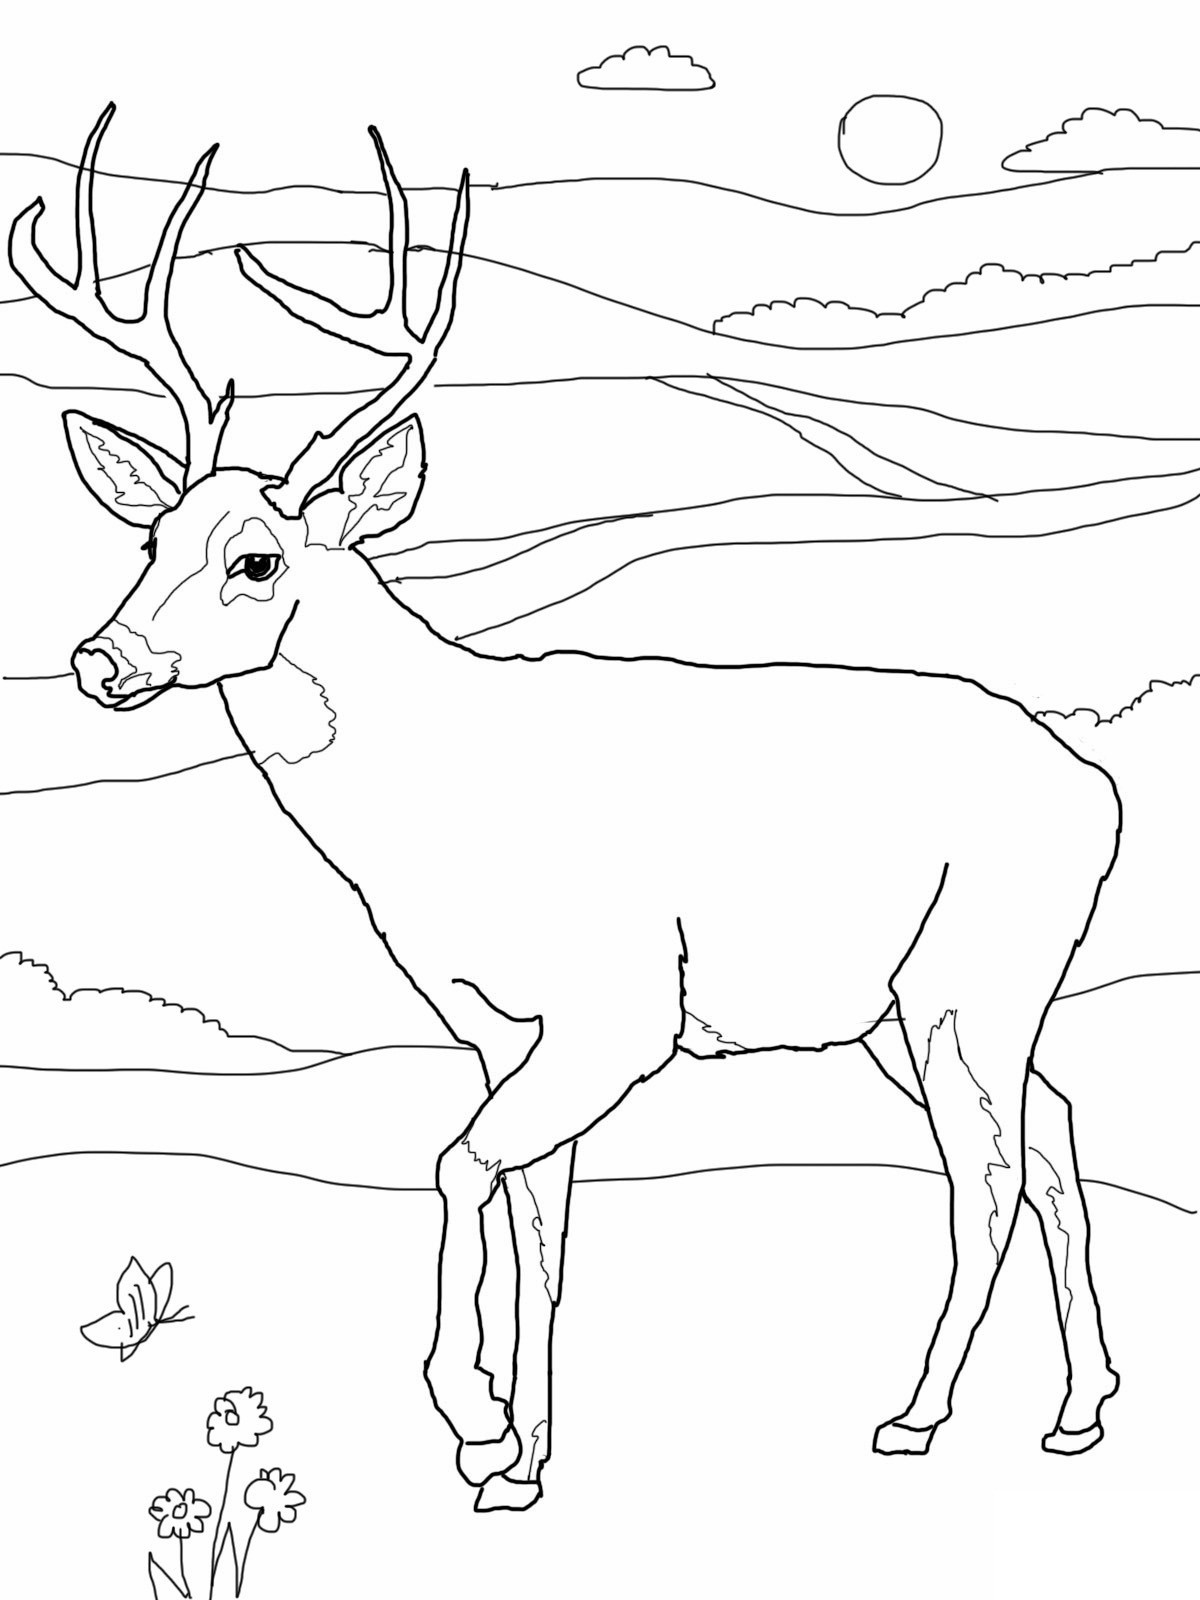 Best ideas about Free Coloring Pages Deer . Save or Pin Free Printable Deer Coloring Pages For Kids Now.